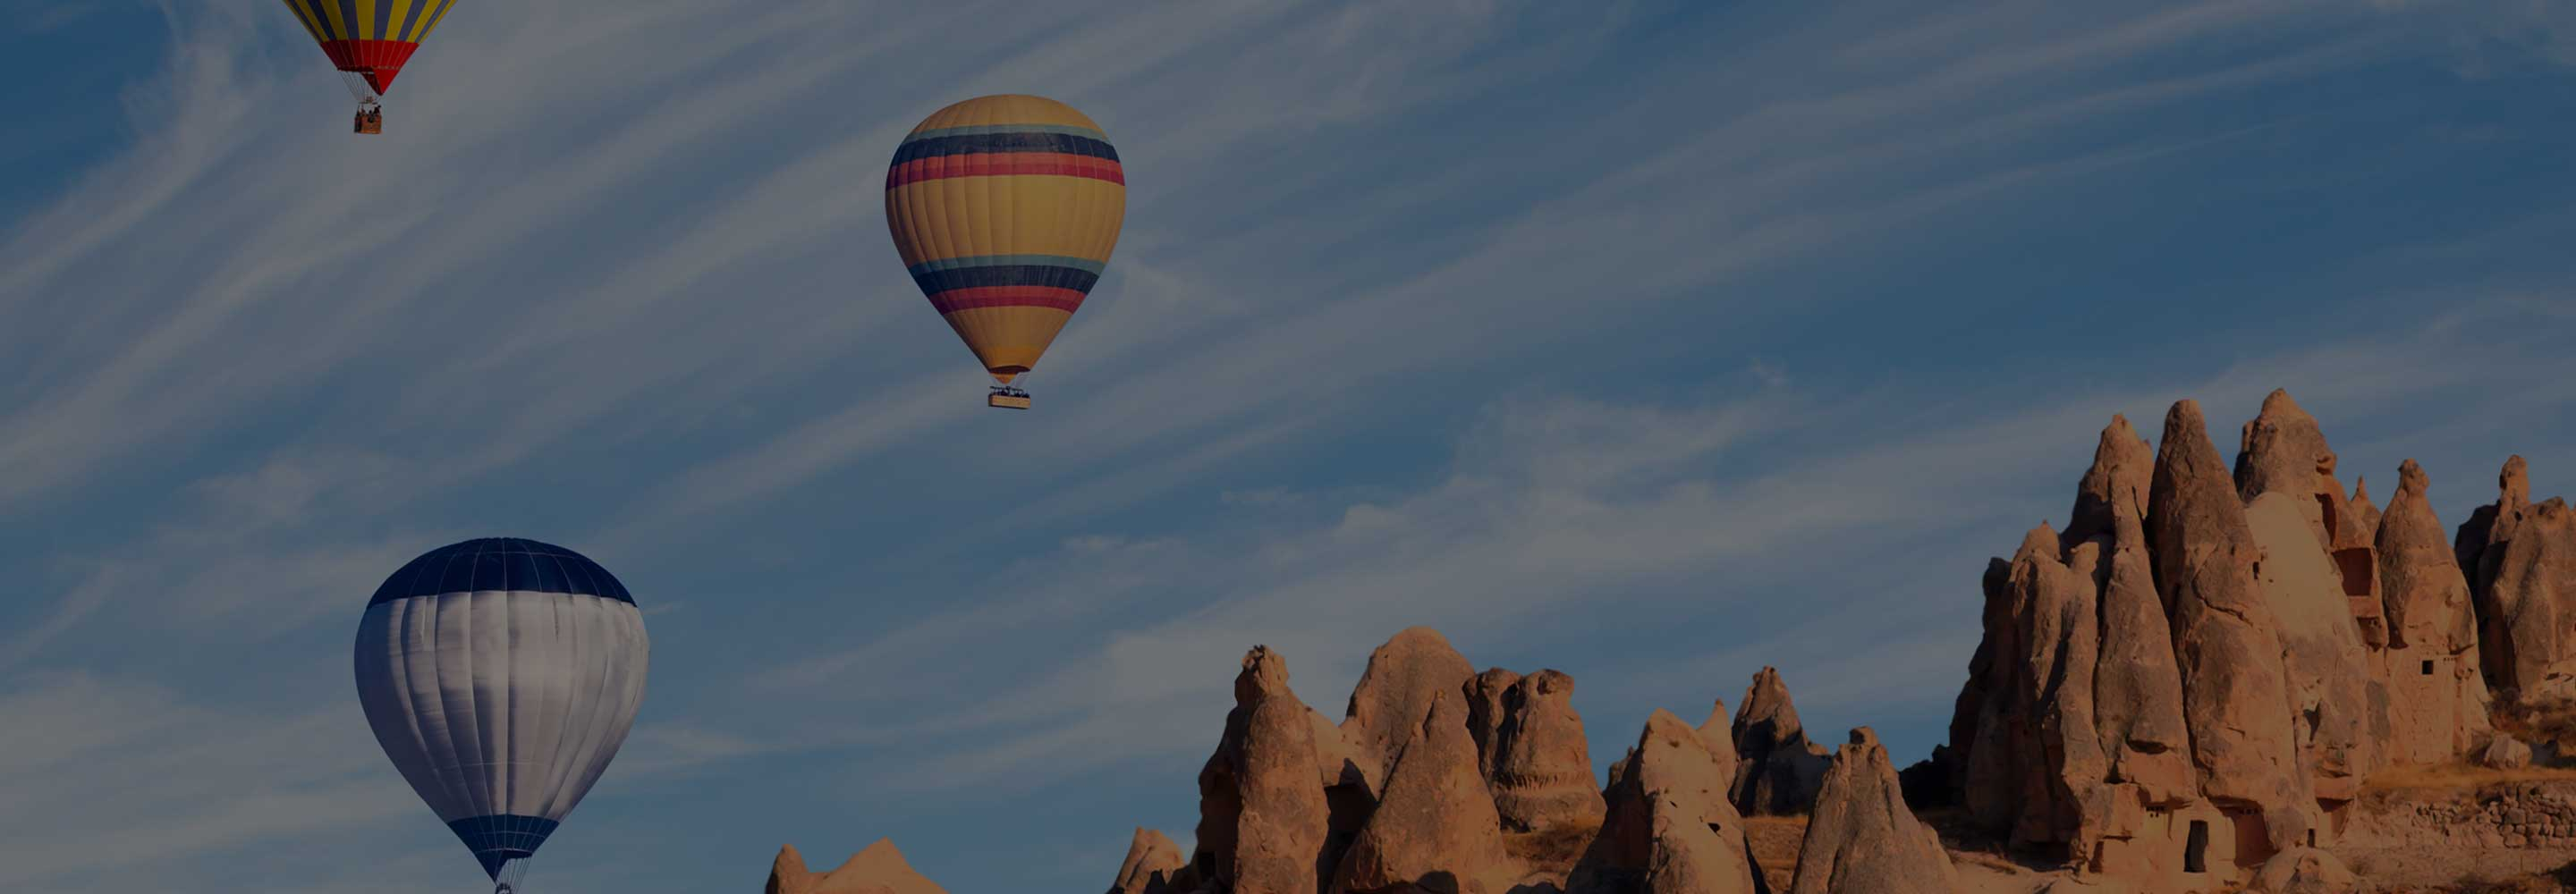 Air balloons in the sky with mountains